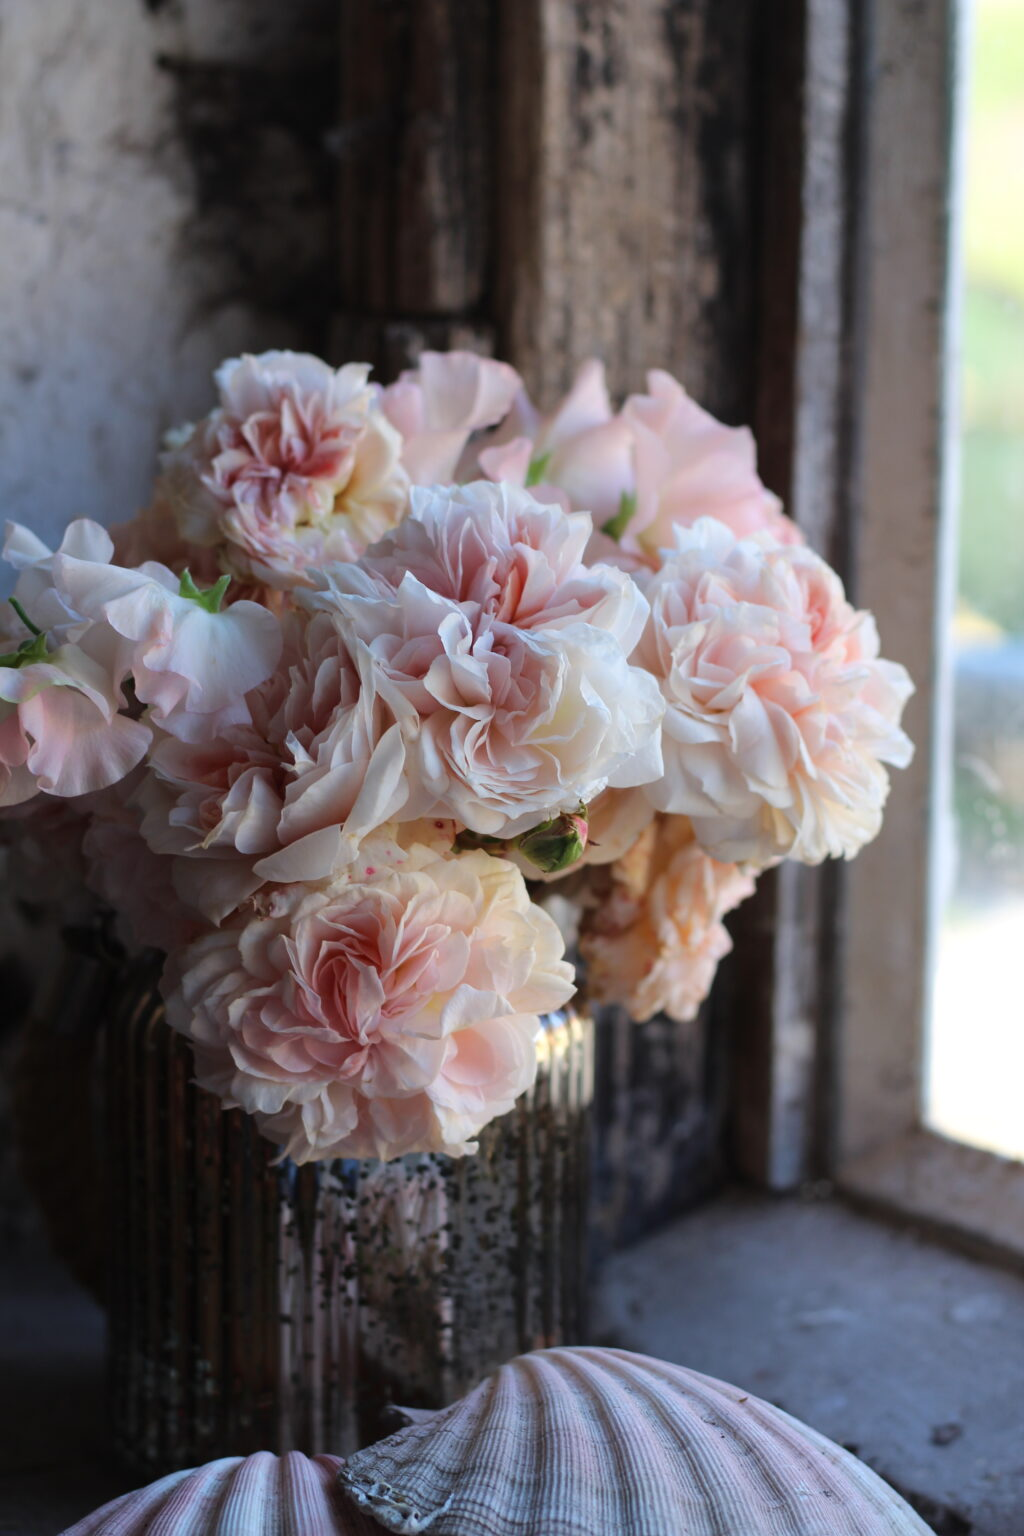 Pastel garden roses in an antiqued silver vase by Wildly Beautiful Flowers.